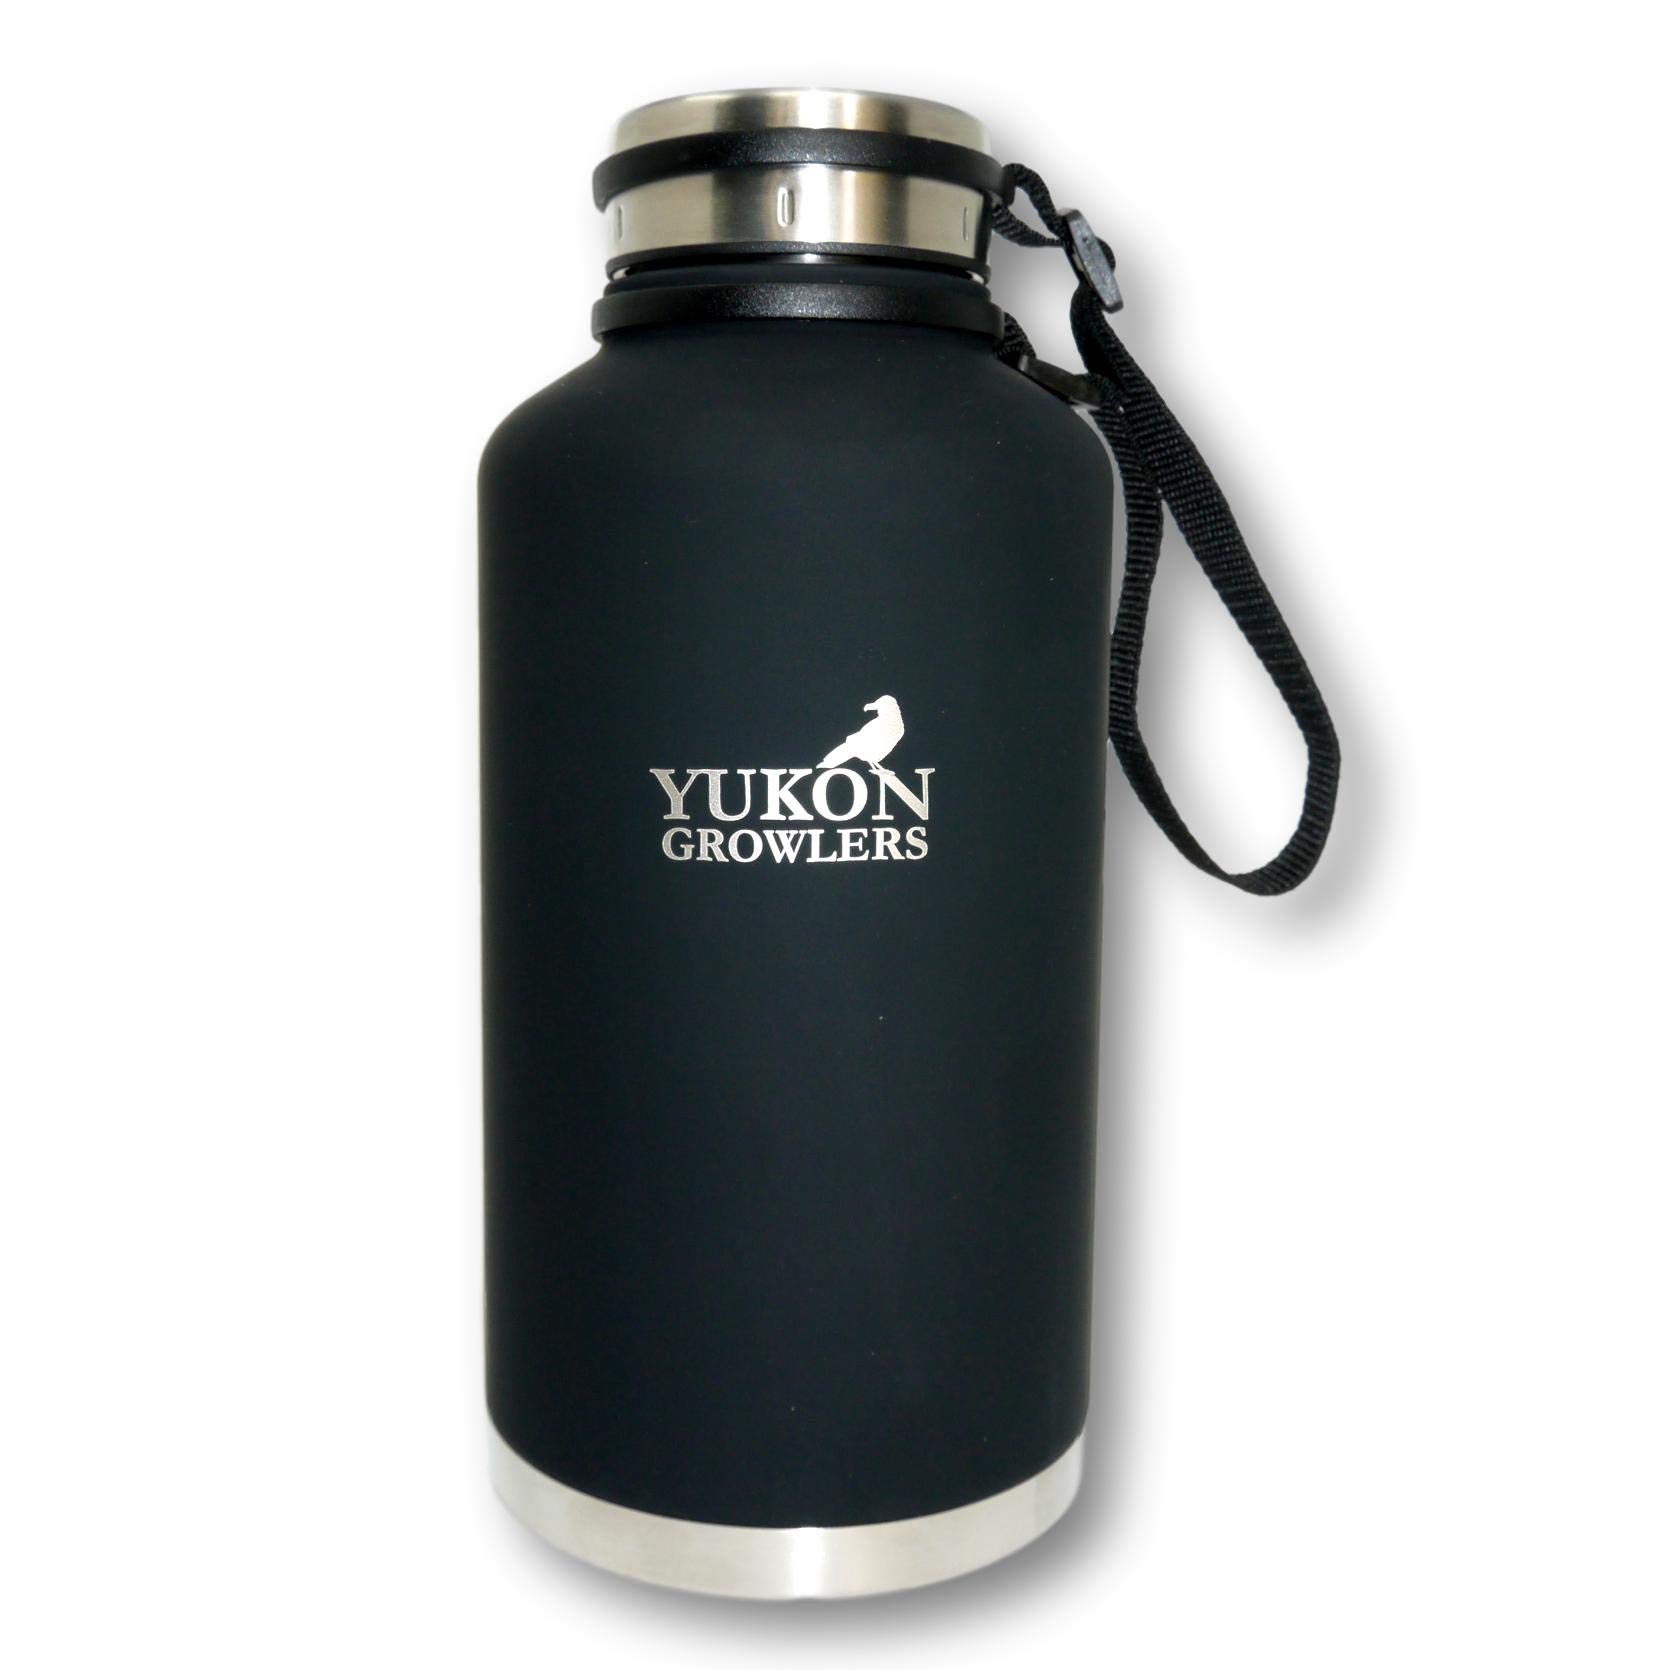 Yukon Growlers Insulated Beer Growler - Keep Your Beer Cold and Carbonated for 24 Hours in This Stainless Steel Vacuum Water Bottle – Also Keeps Coffee Hot - Improved Lid – 64 oz